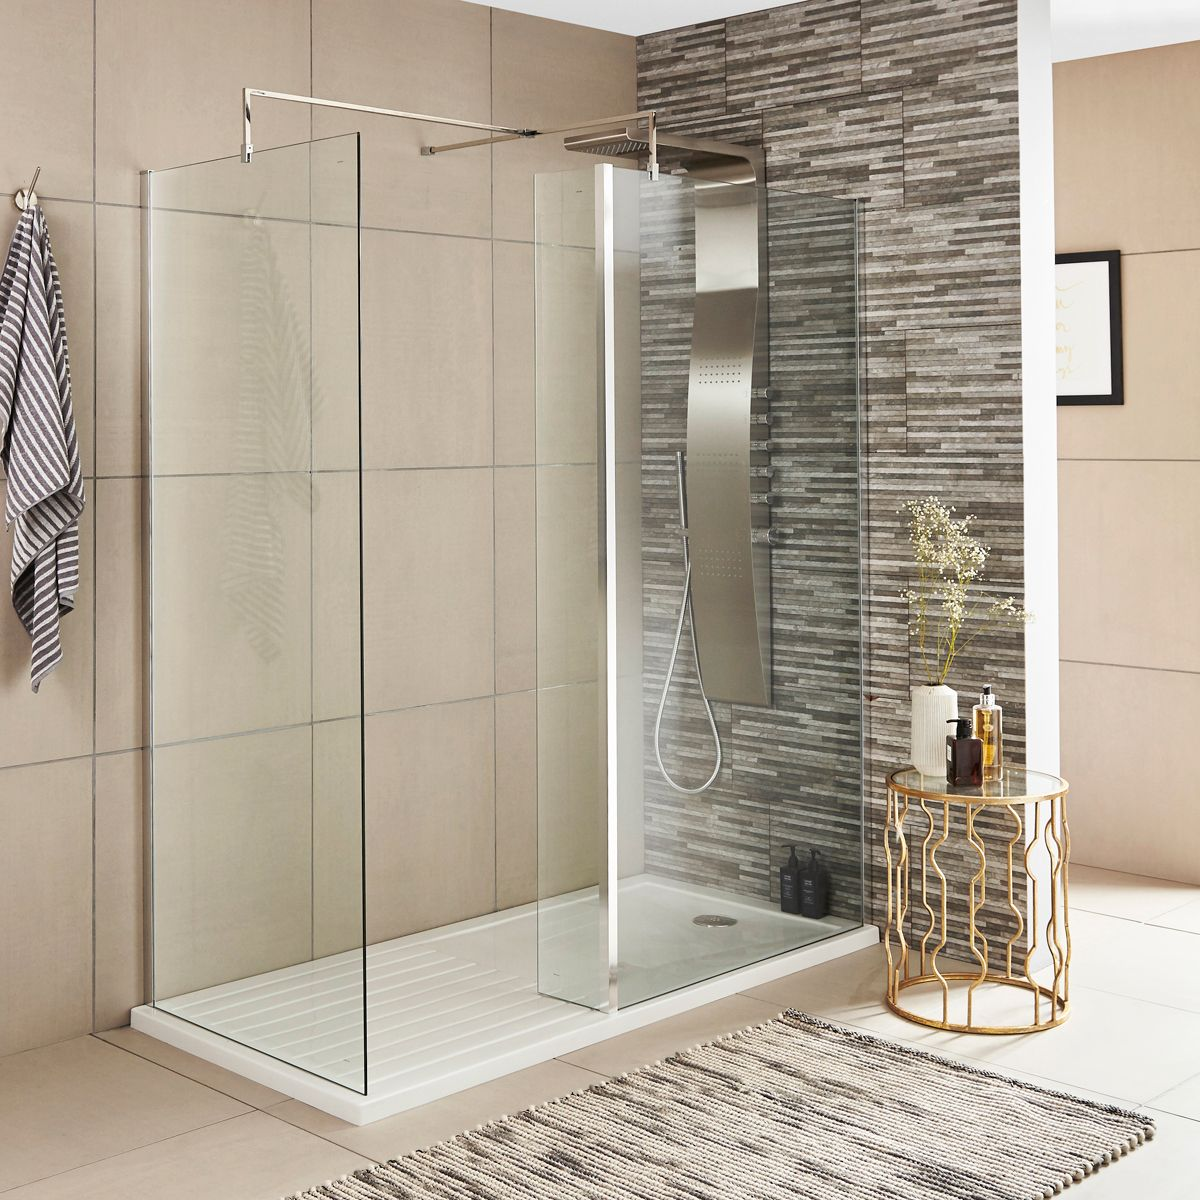 Premier Wet Room Shower Enclosure with Optional Side Panel